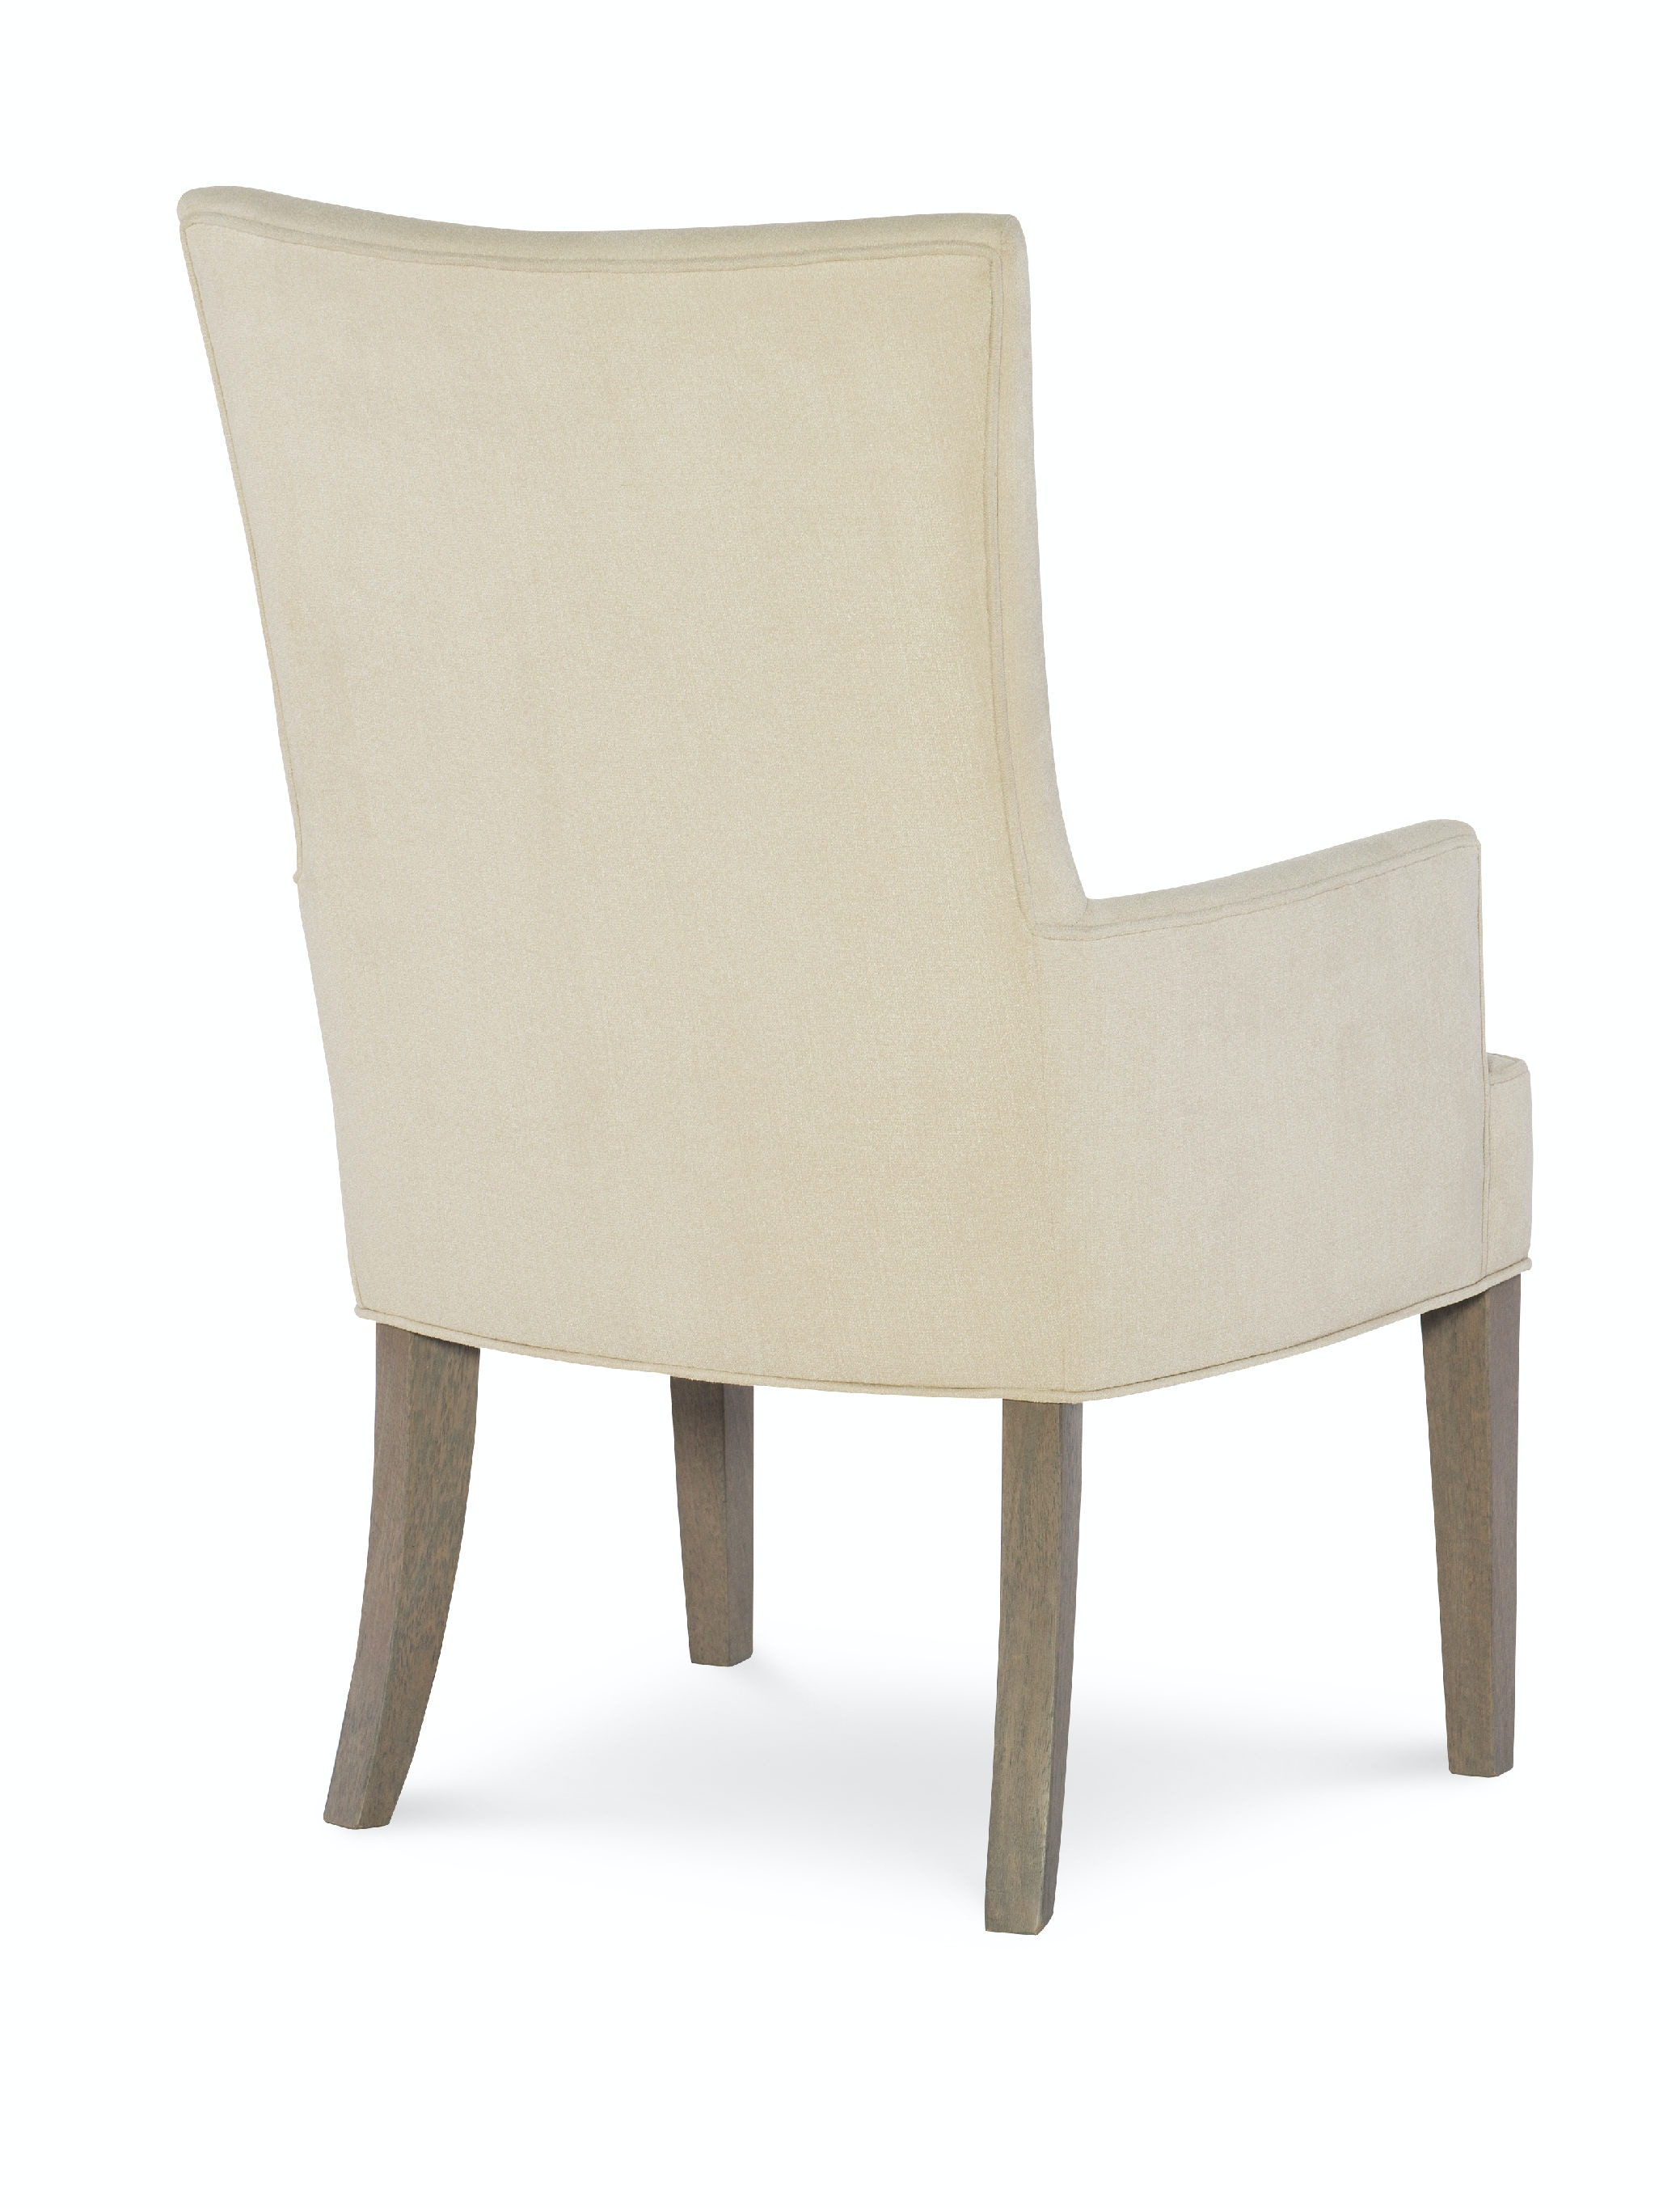 Rachael Ray Home By Legacy Classic Furniture Upholstered Host Chair  6000 451 KD